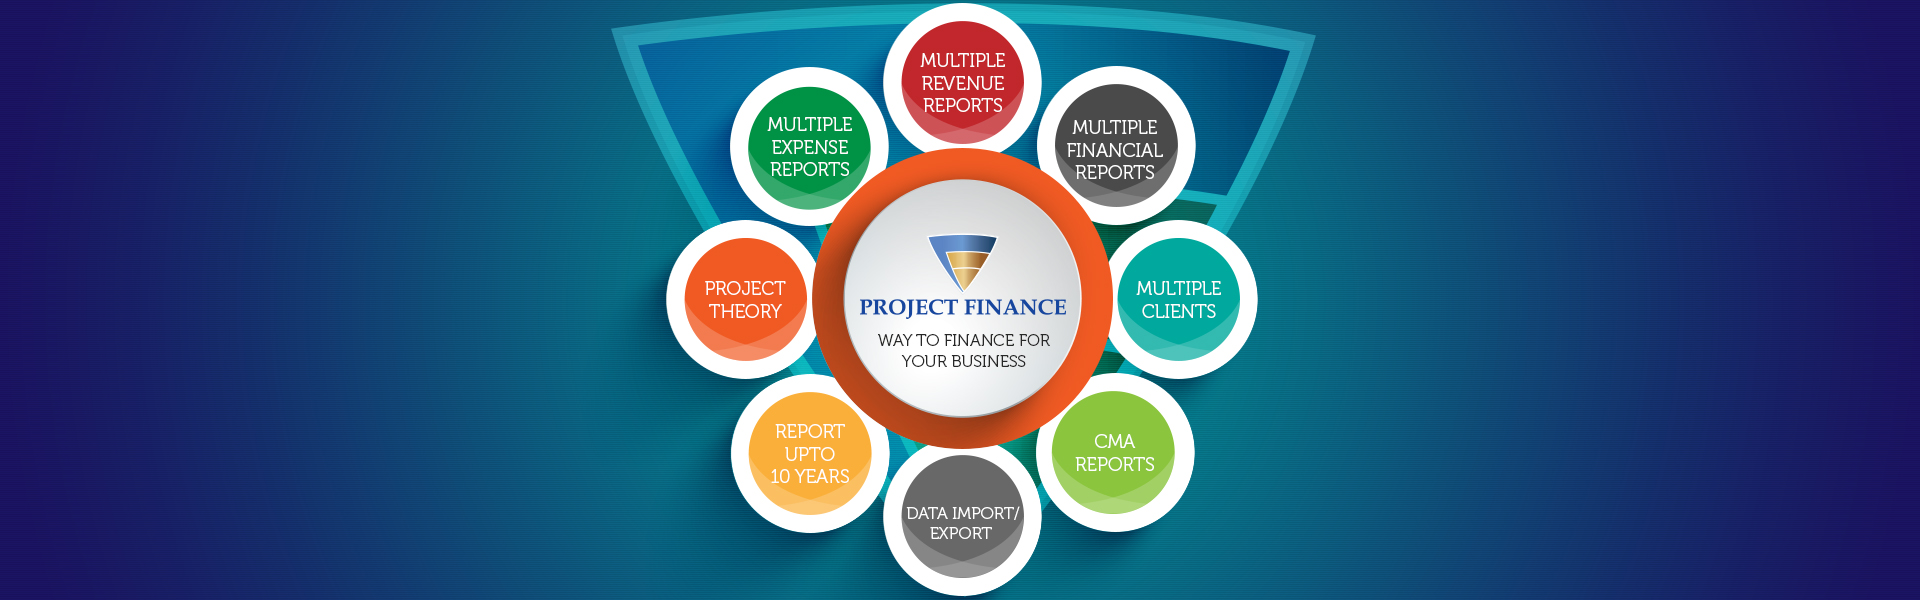 Project Finance Features